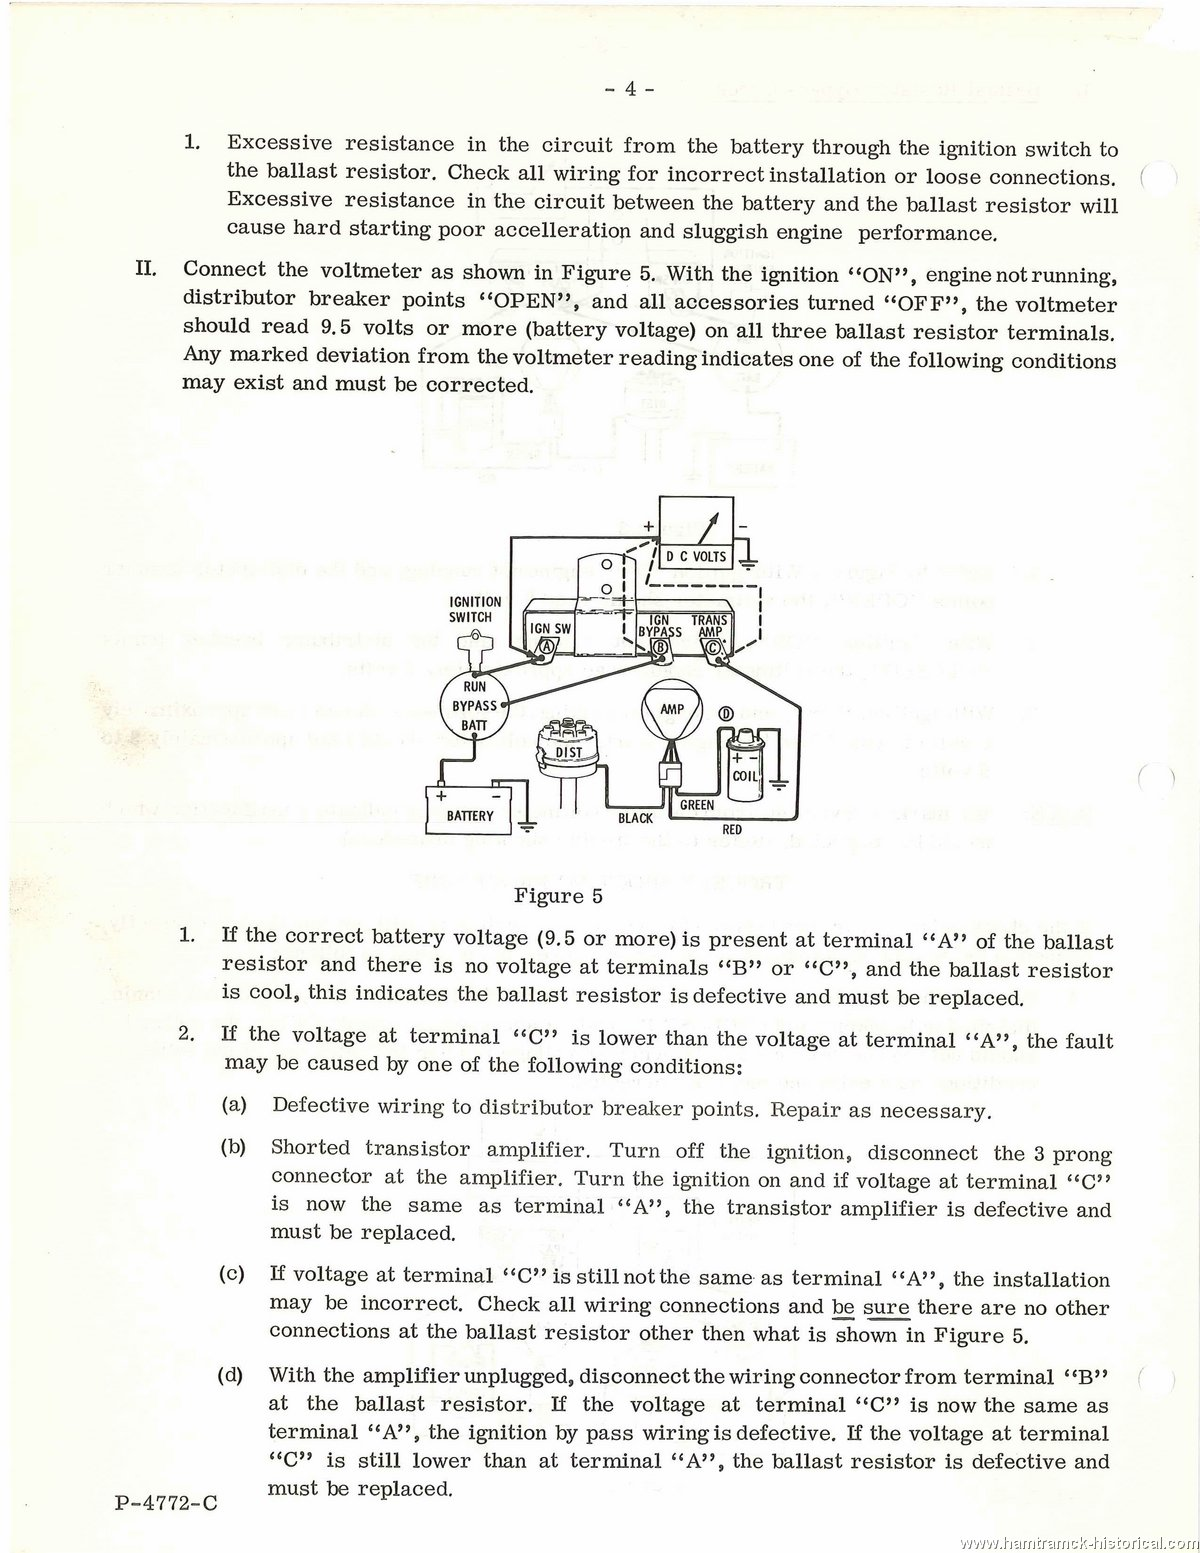 The 1970 Hamtramck Registry 1966 Tsbs And Related Material Index Page 426 Hemi Distributor Wiring Diagram No